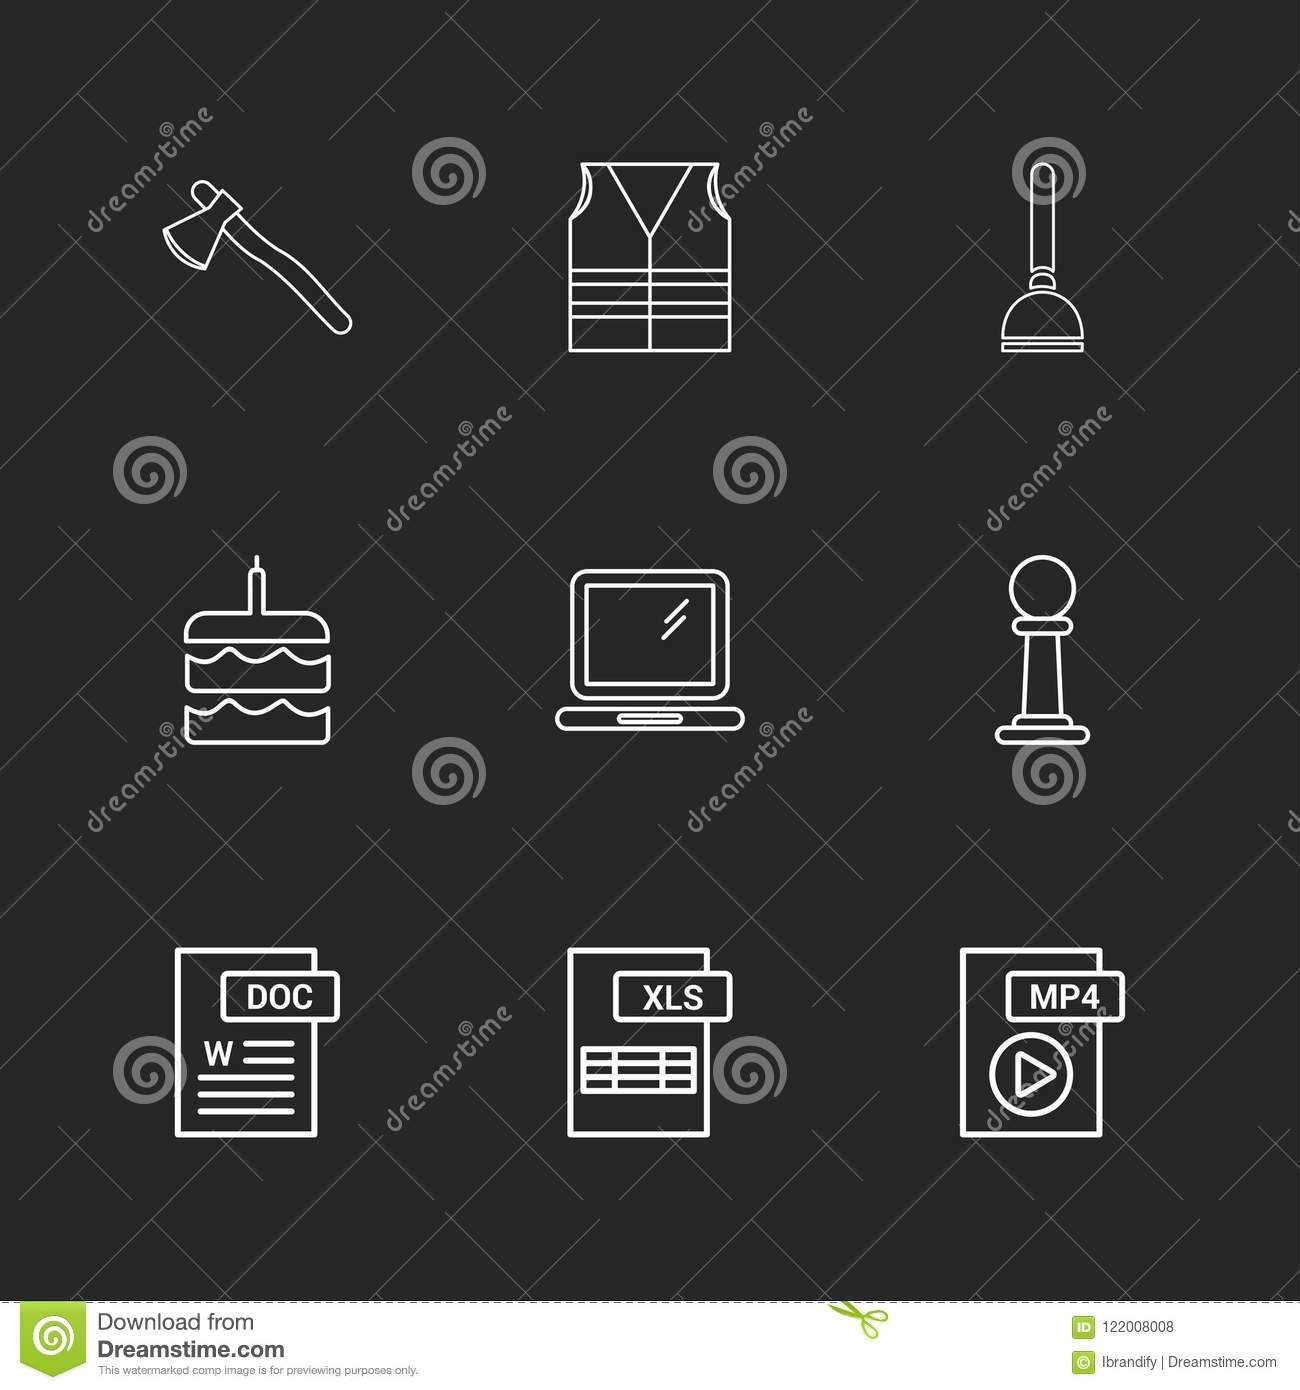 Axe , Safety Jacket , Pump , Cake , Word Document , Laptop , Mp4